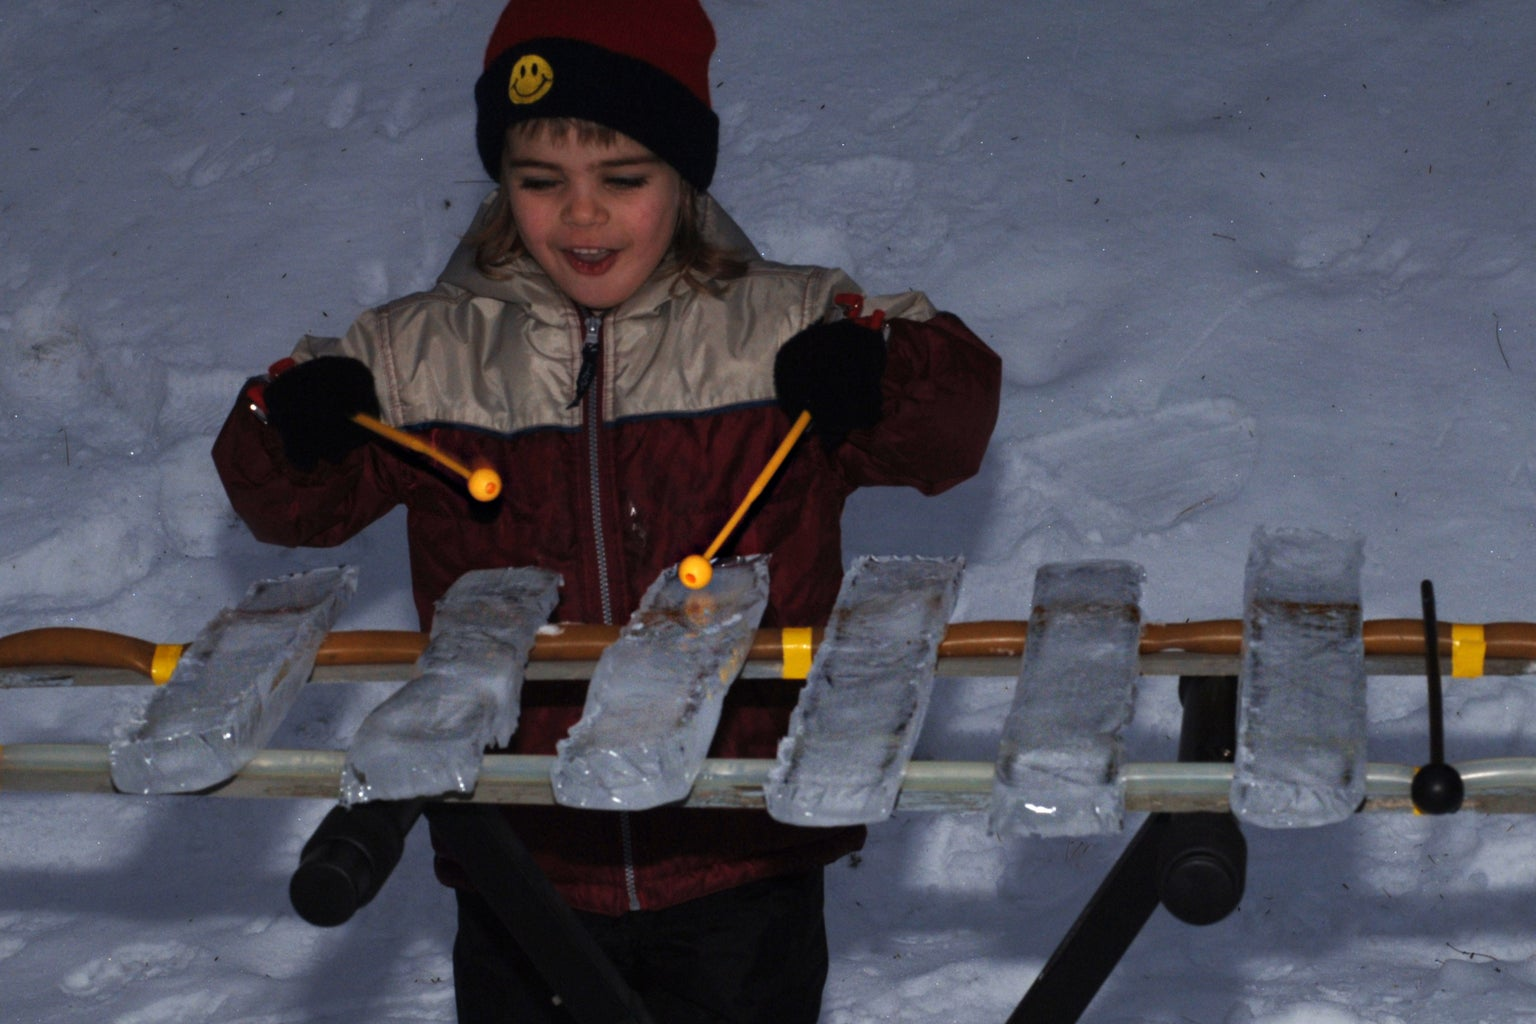 Play by Striking the Ice Slabs With Mallets